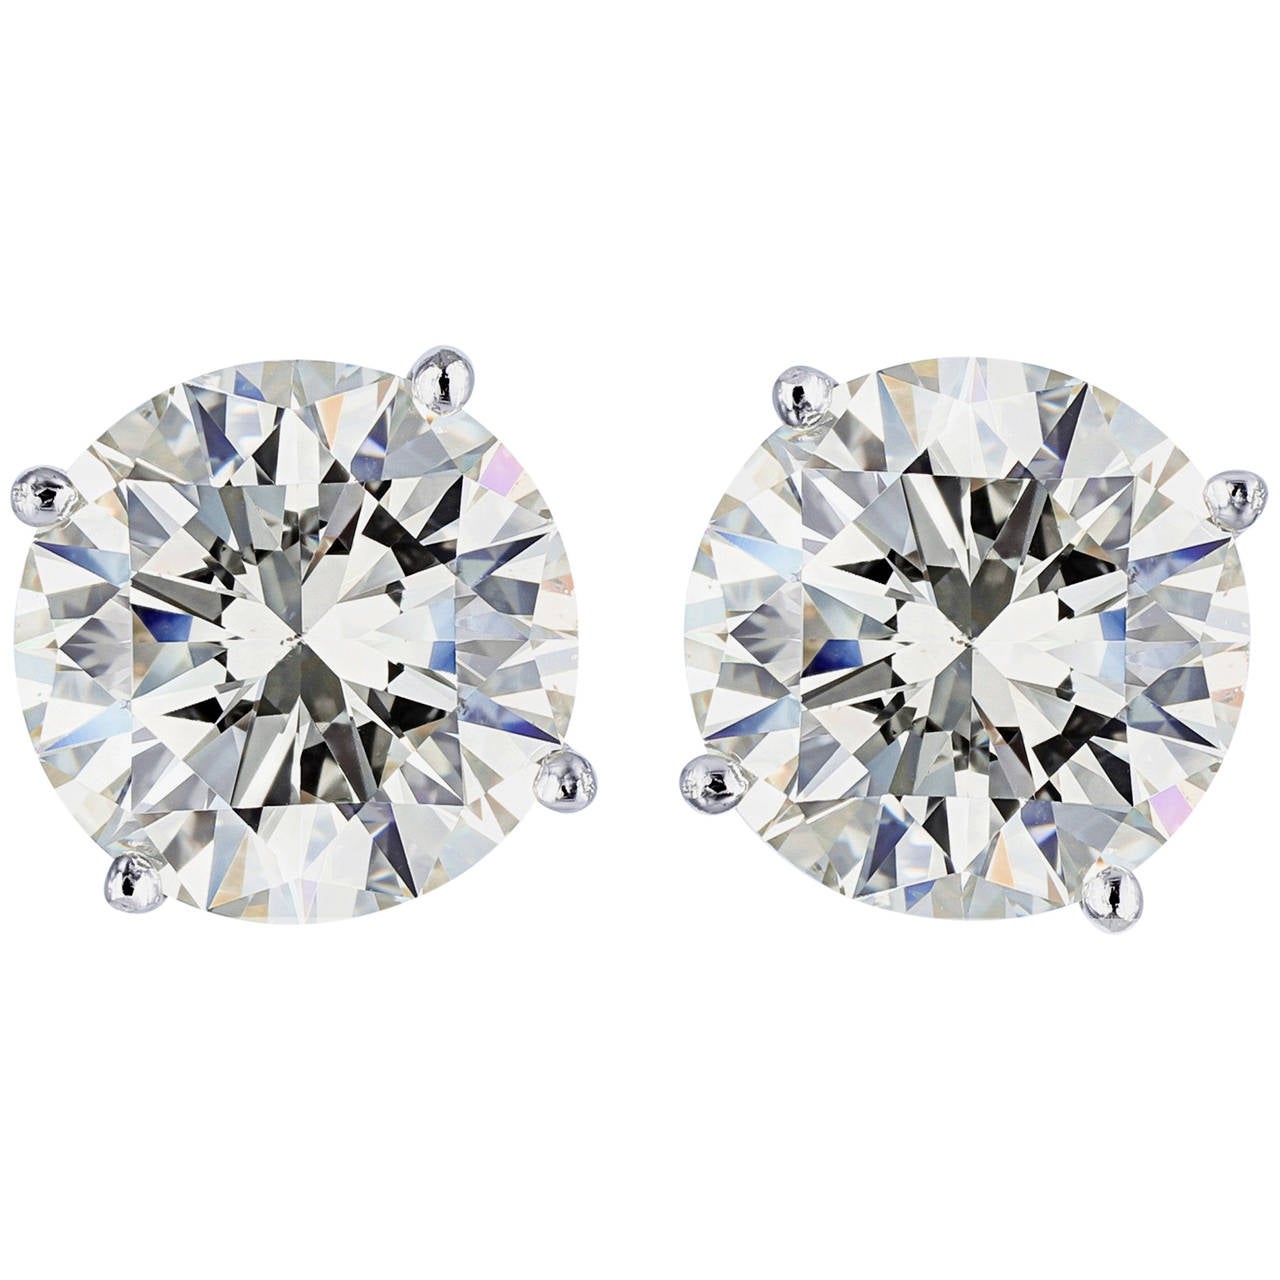 4.57 Carat GIA Cert Round Brilliant Diamond Gold Stud Earrings